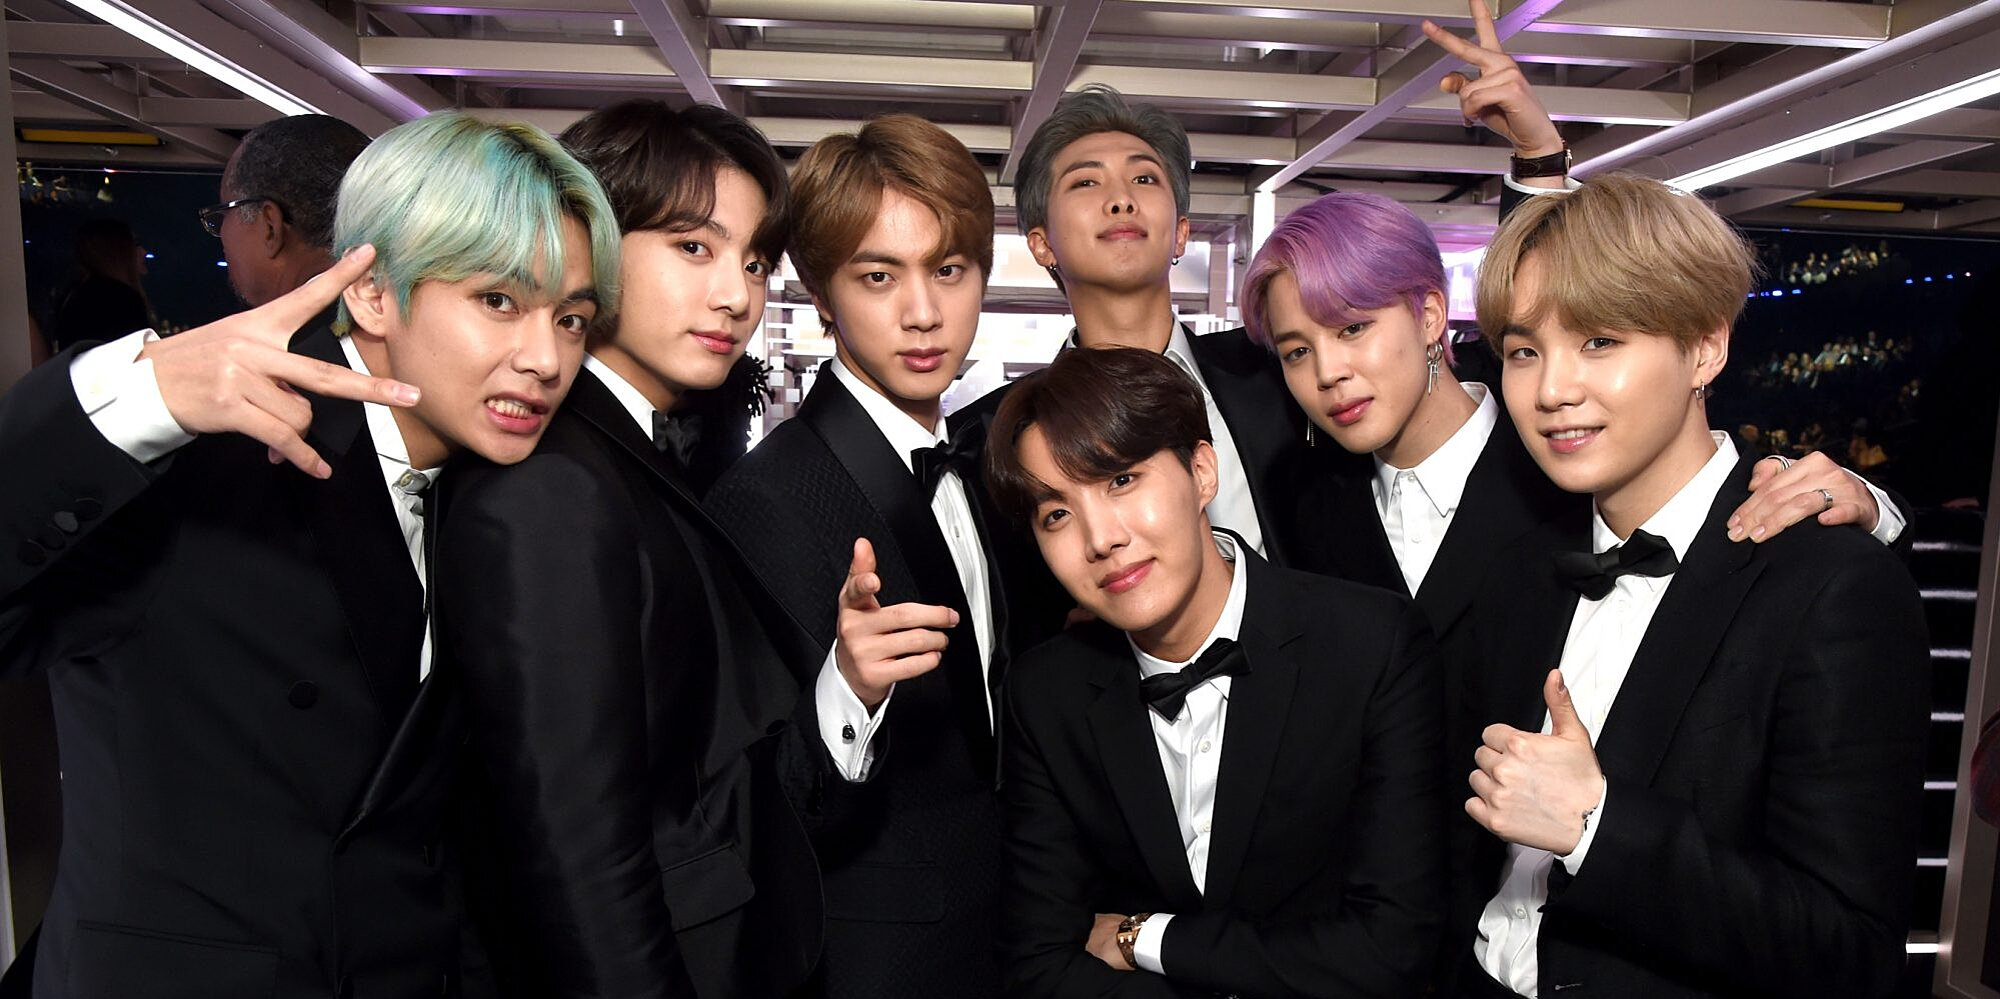 BTS release new album Map of the Soul 20, featuring lead single ON ...